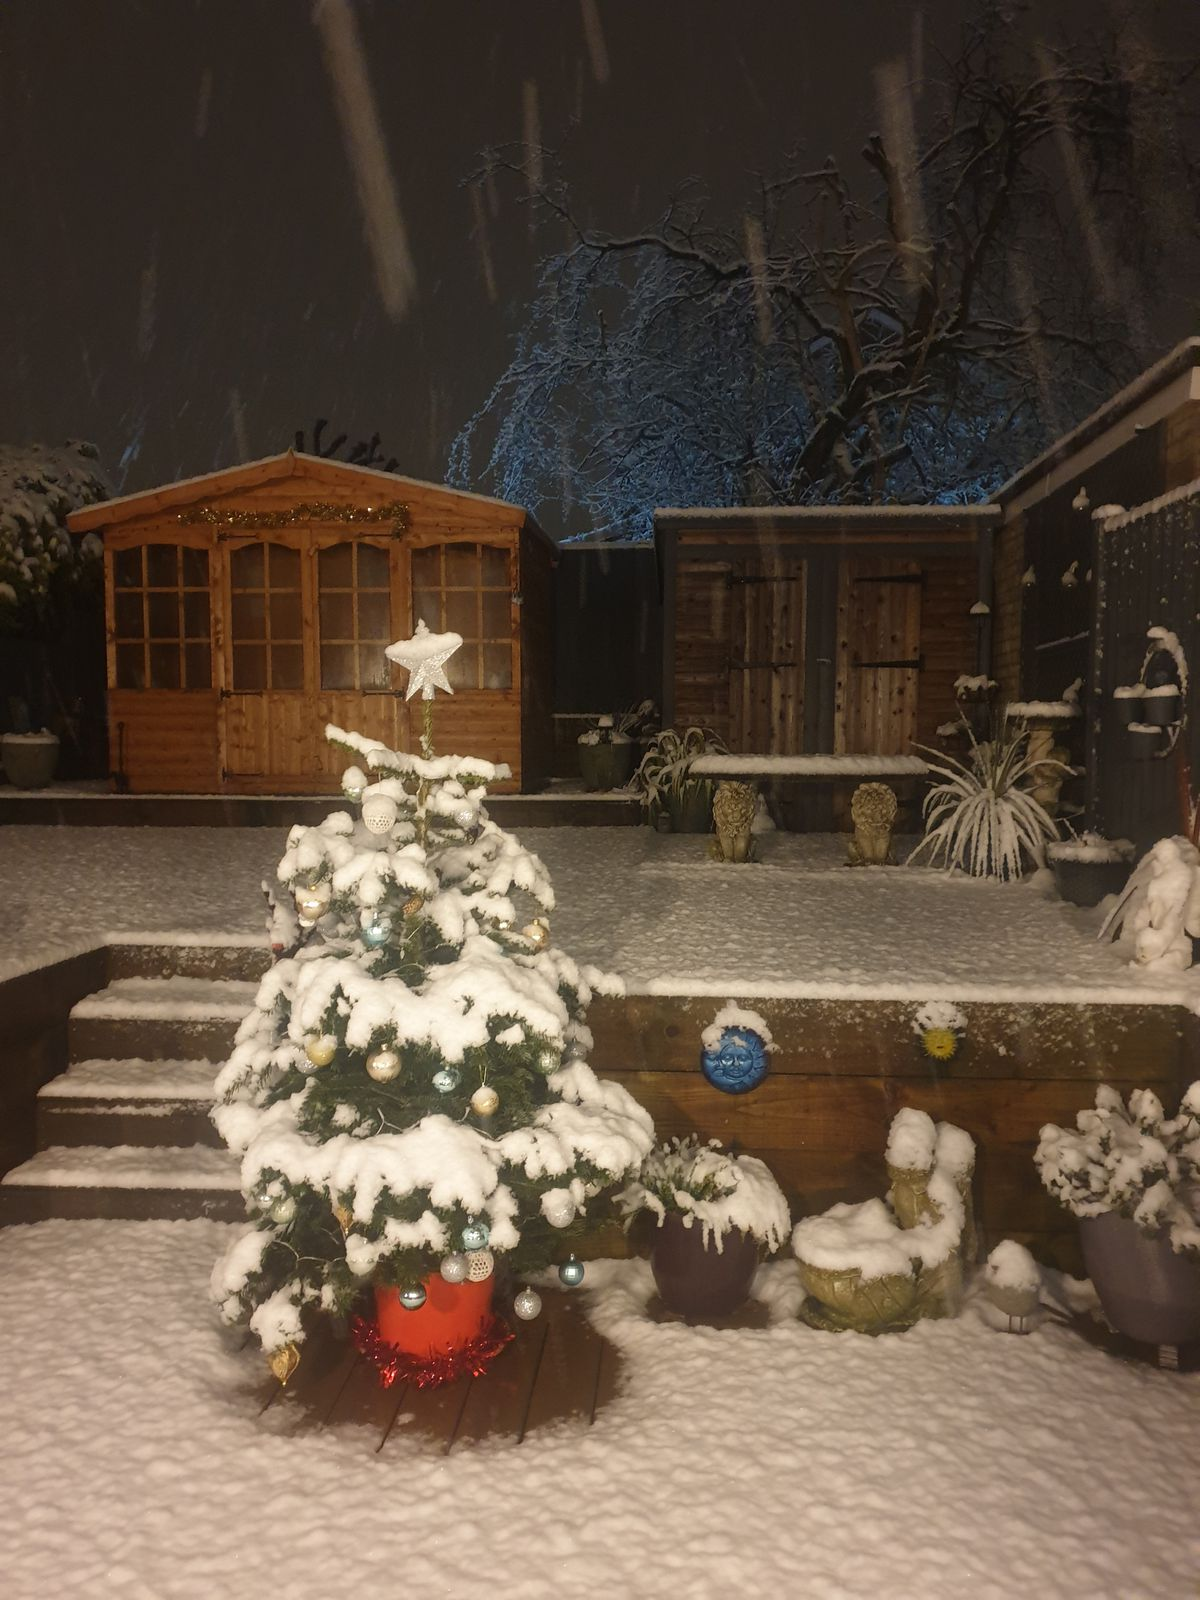 Dee in Wombourne shared this photo of her garden